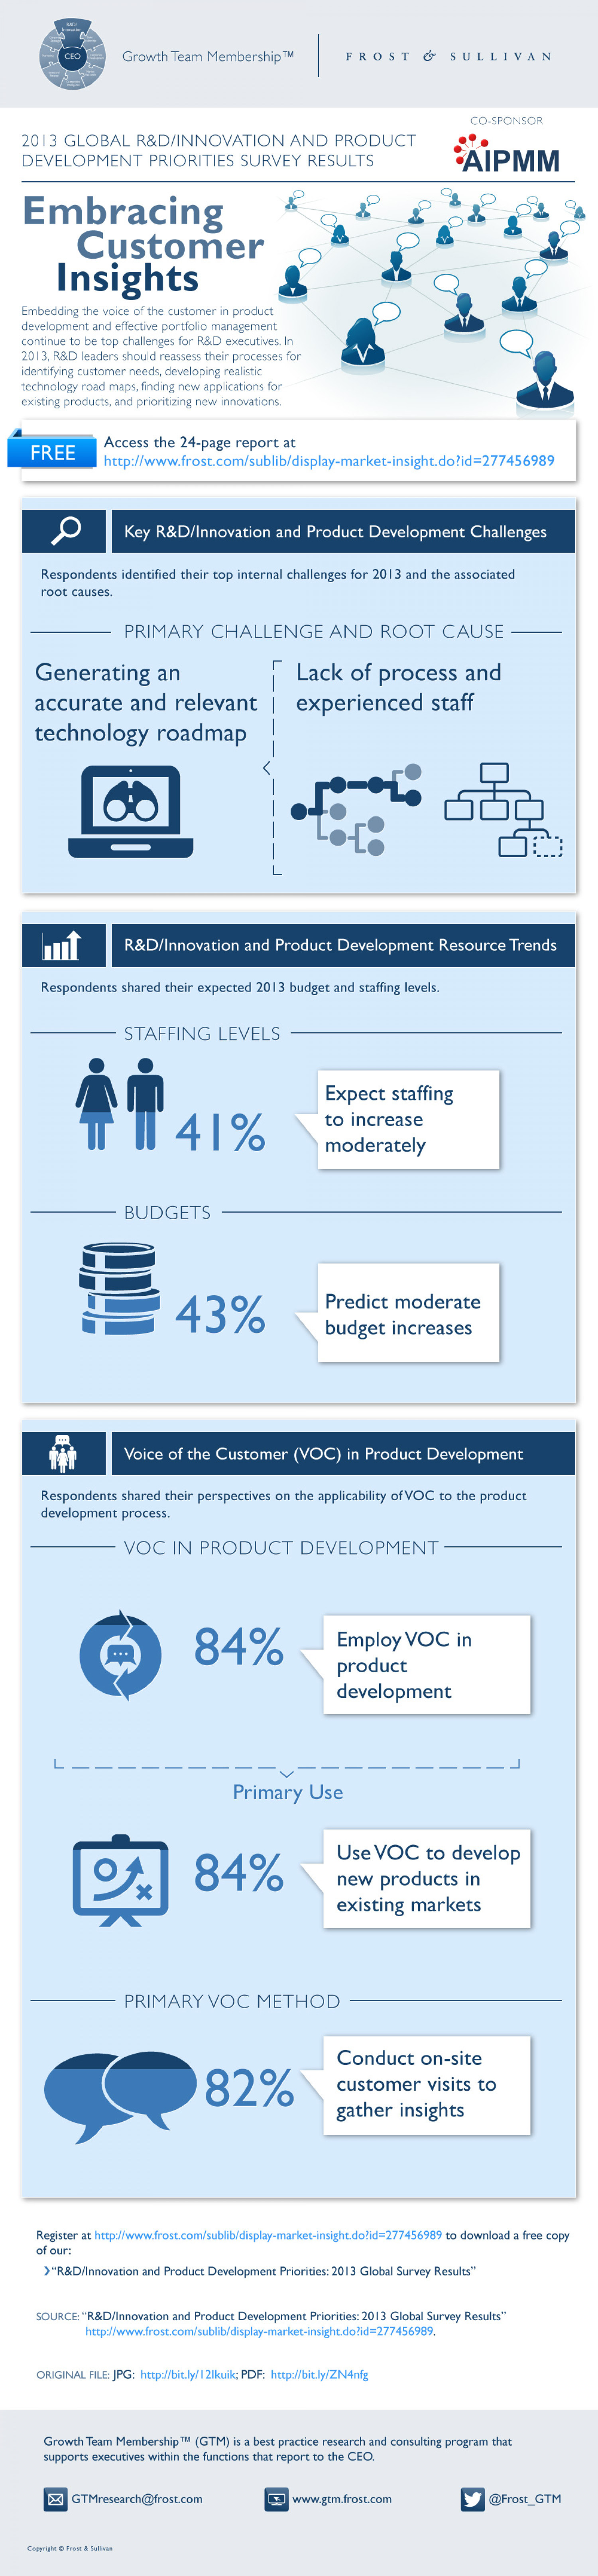 Embracing Customer Insights Infographic